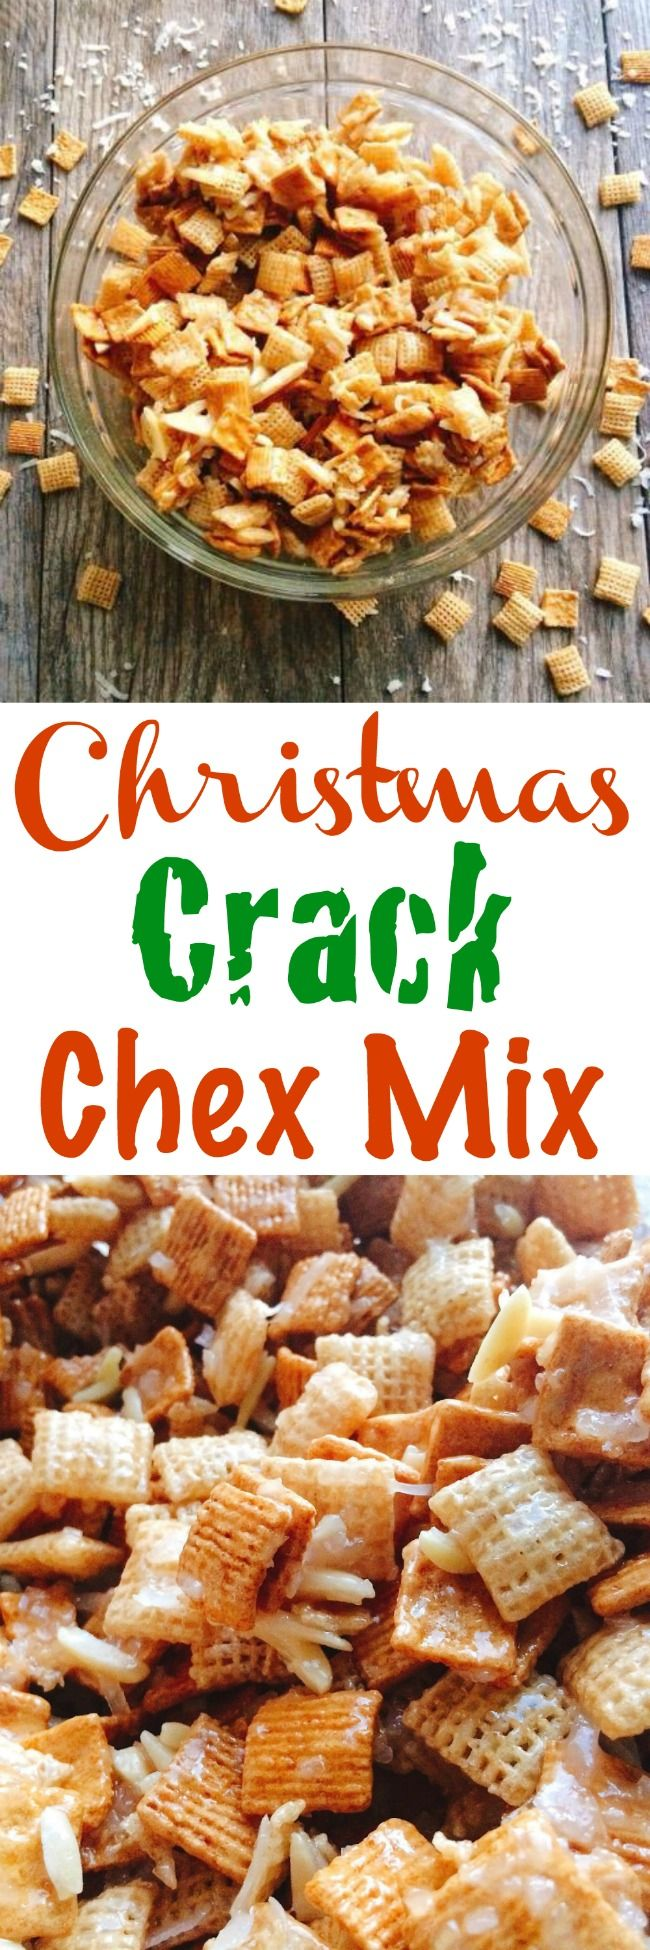 Christmas Crack Chex Mix